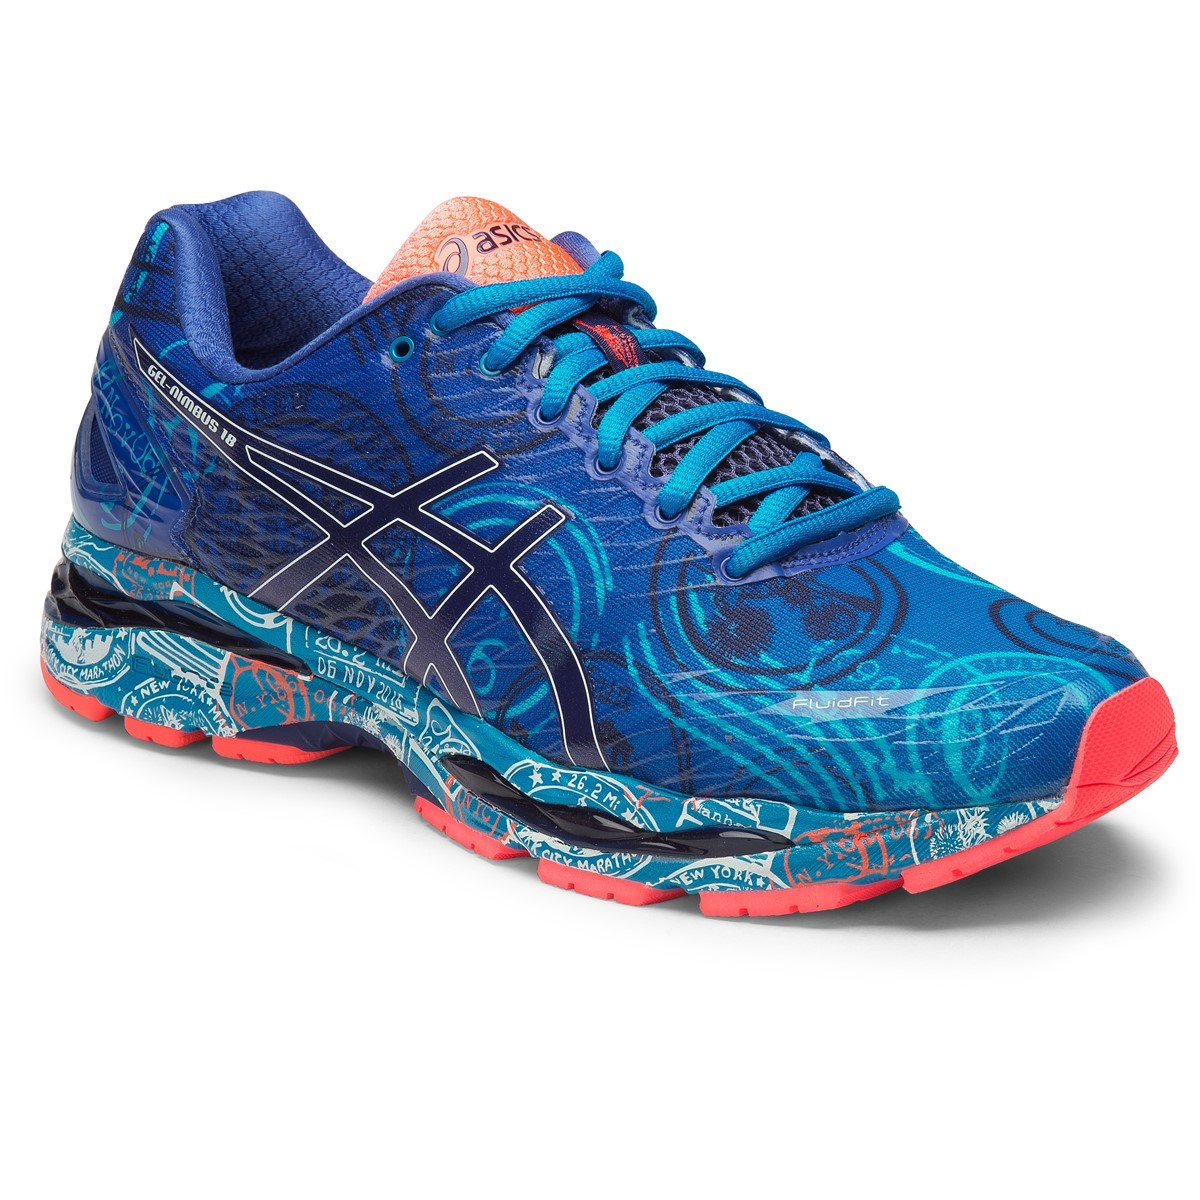 asics gel nimbus 18 nyc limited edition mens running. Black Bedroom Furniture Sets. Home Design Ideas